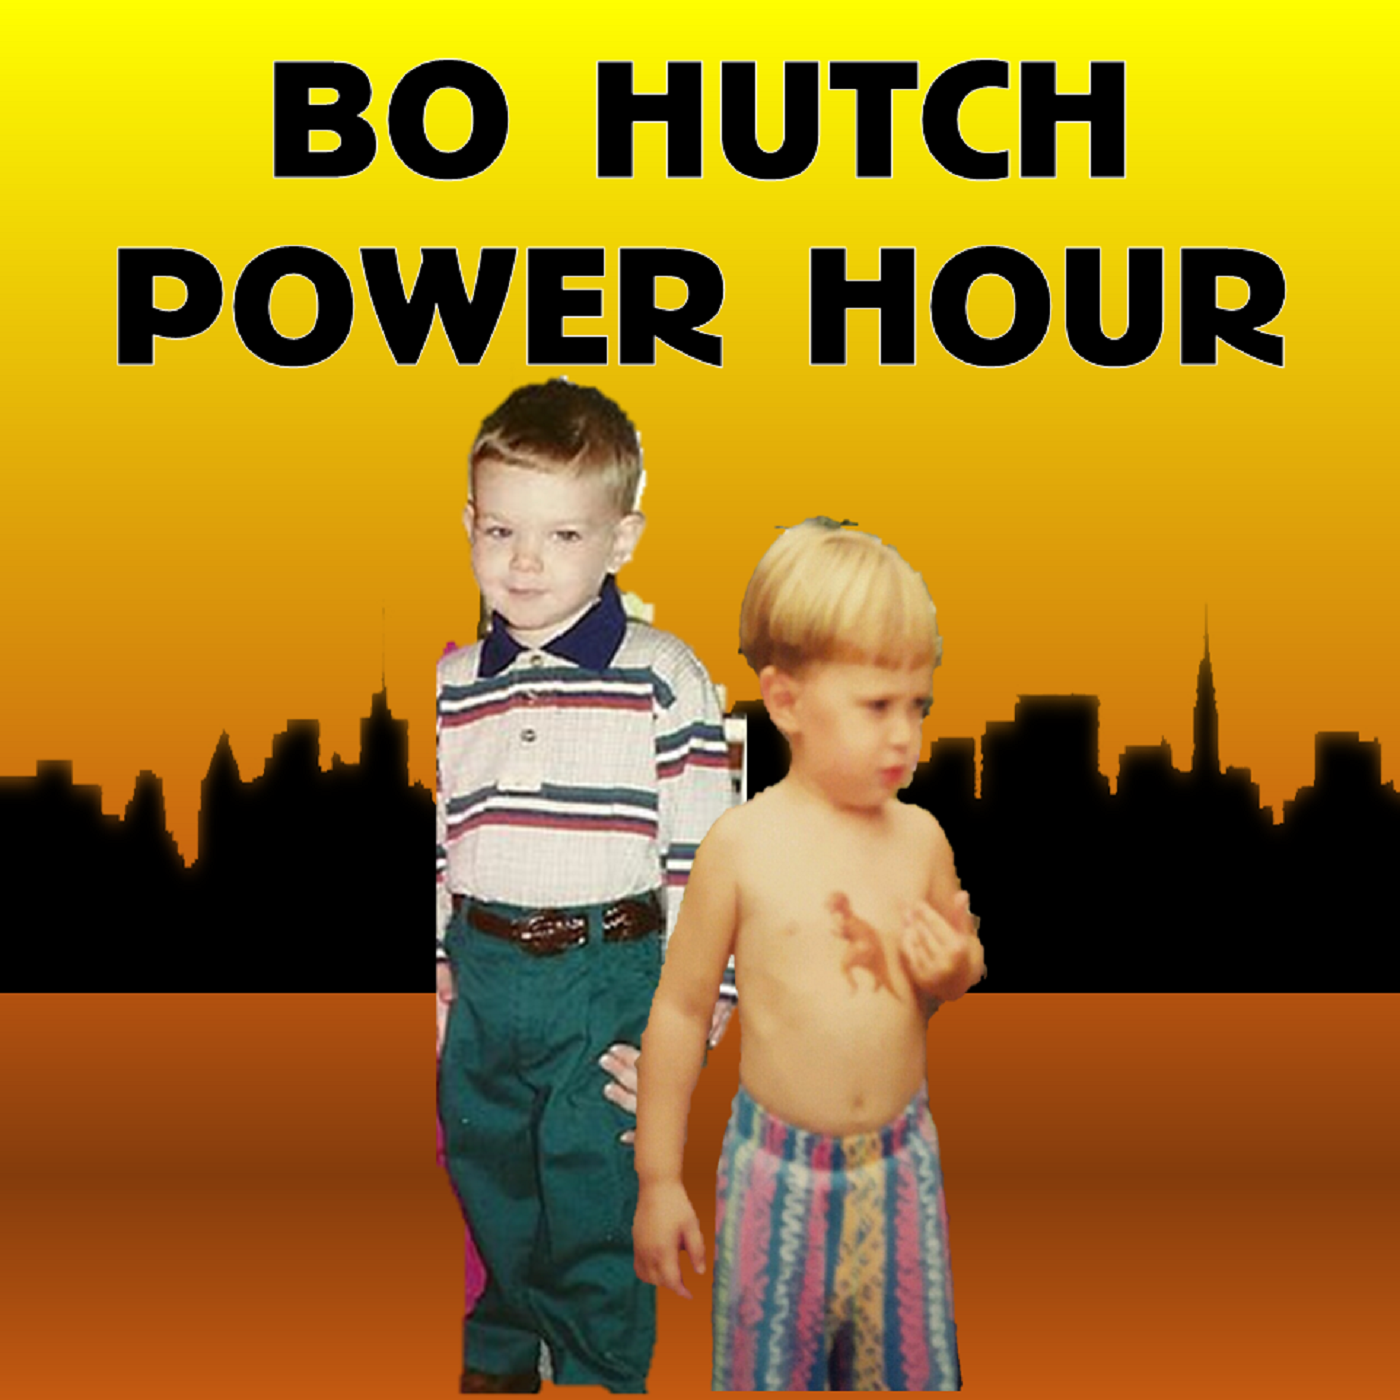 Bo Hutch Power Hour